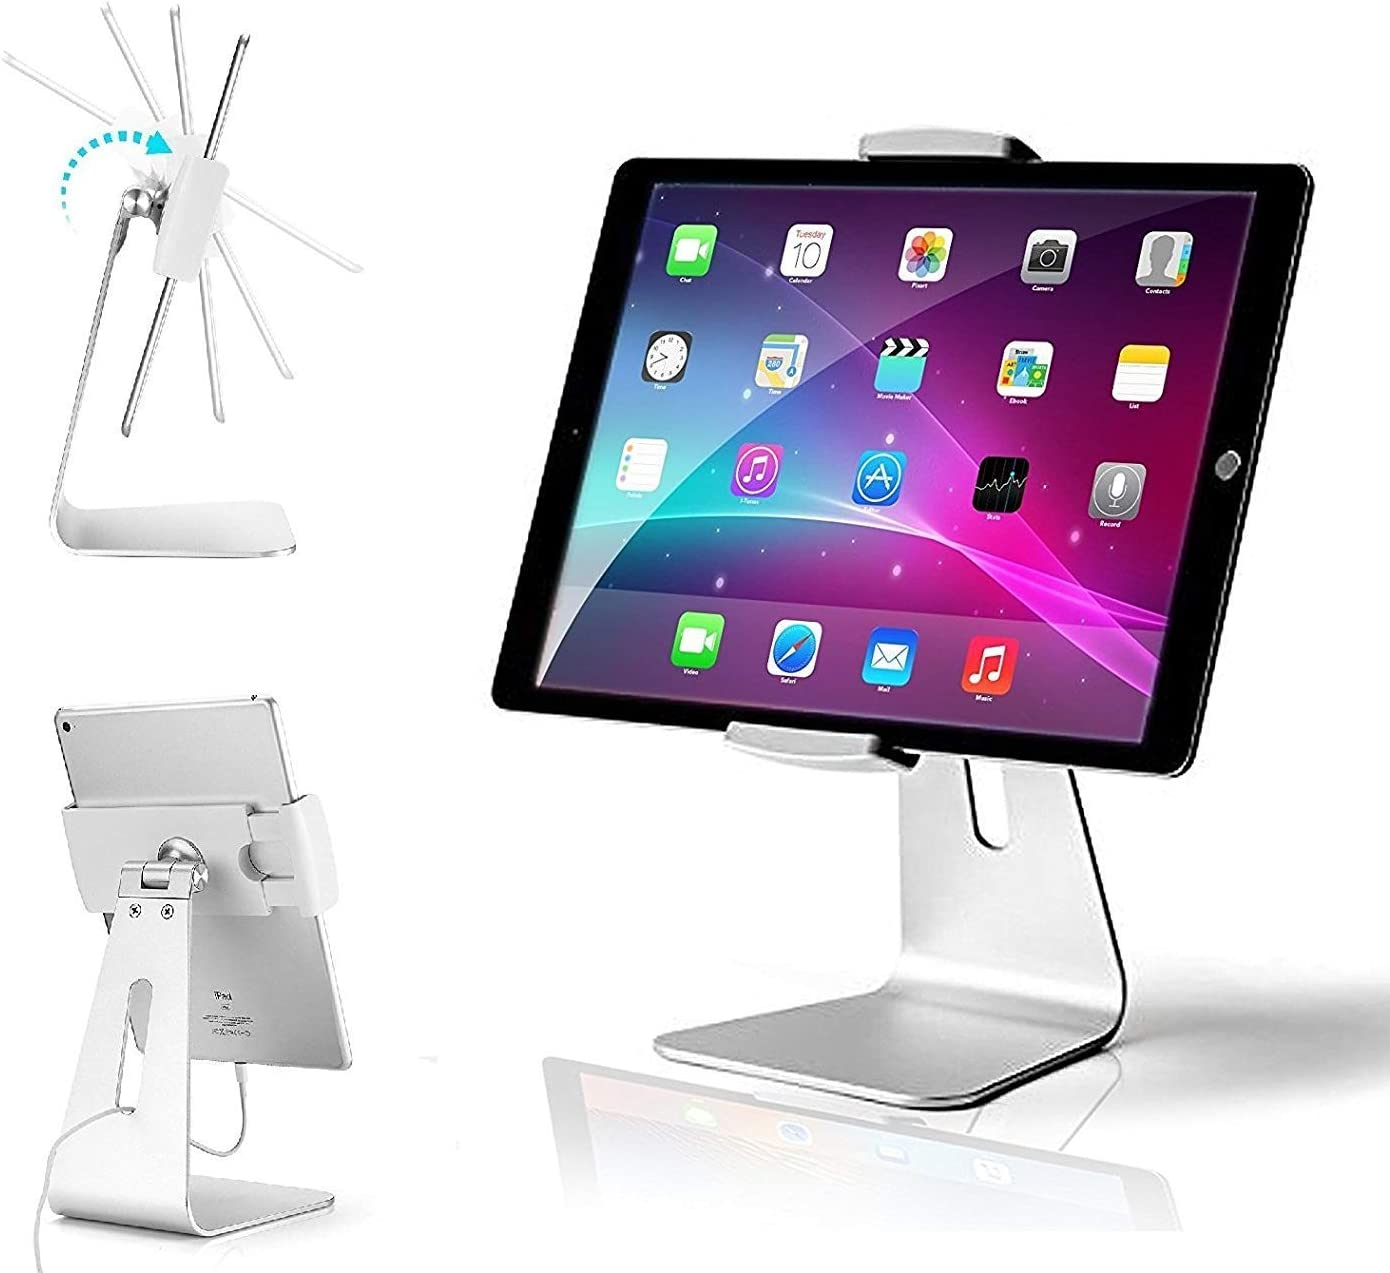 AboveTEK Elegant Tablet Stand and iPad Lock Security Cable